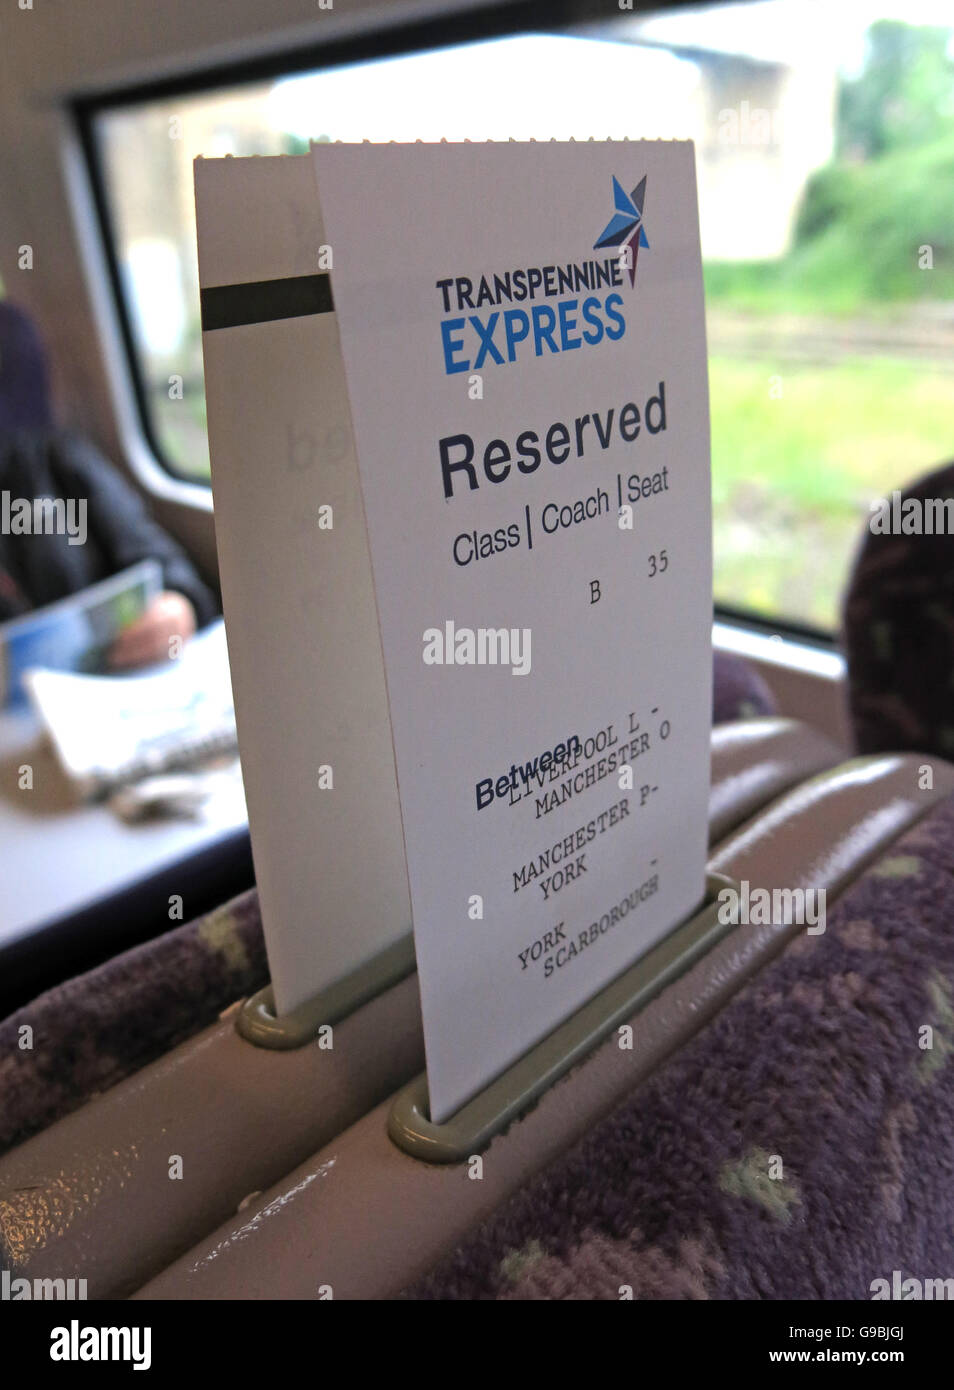 Class,Coach,seat,mandatory,ticket,seating,table,window,aisle,power,socket,TPE,Trans,Pennine,std,standard,first,class,Warrington,B35,BR,UK,GB,on,a,York,Scarborough,Liverpool,Transpennine Express,Trans-pennine Express,British Rail,British Railways,Train reservation,seat reservation,on a,GoTonySmith,@HotpixUK,carriage,line,main,railroad,reservation,reserved,ticket,travel,operating,co,company,TOC,book,booked,booking,quiet,coach,compulsory,optional,Journey,advance,find,my,children,child,Buy Pictures of,Buy Images Of,Images of,Stock Images,Train Operating Company,Train seat,Train Seat Reservations,Seat Booking,Seat preferences,Quiet coach,Advance Reservation,Seat position,Direction of travel,Quiet Coach,reservation ticket,Find My Seat,Reservations for children